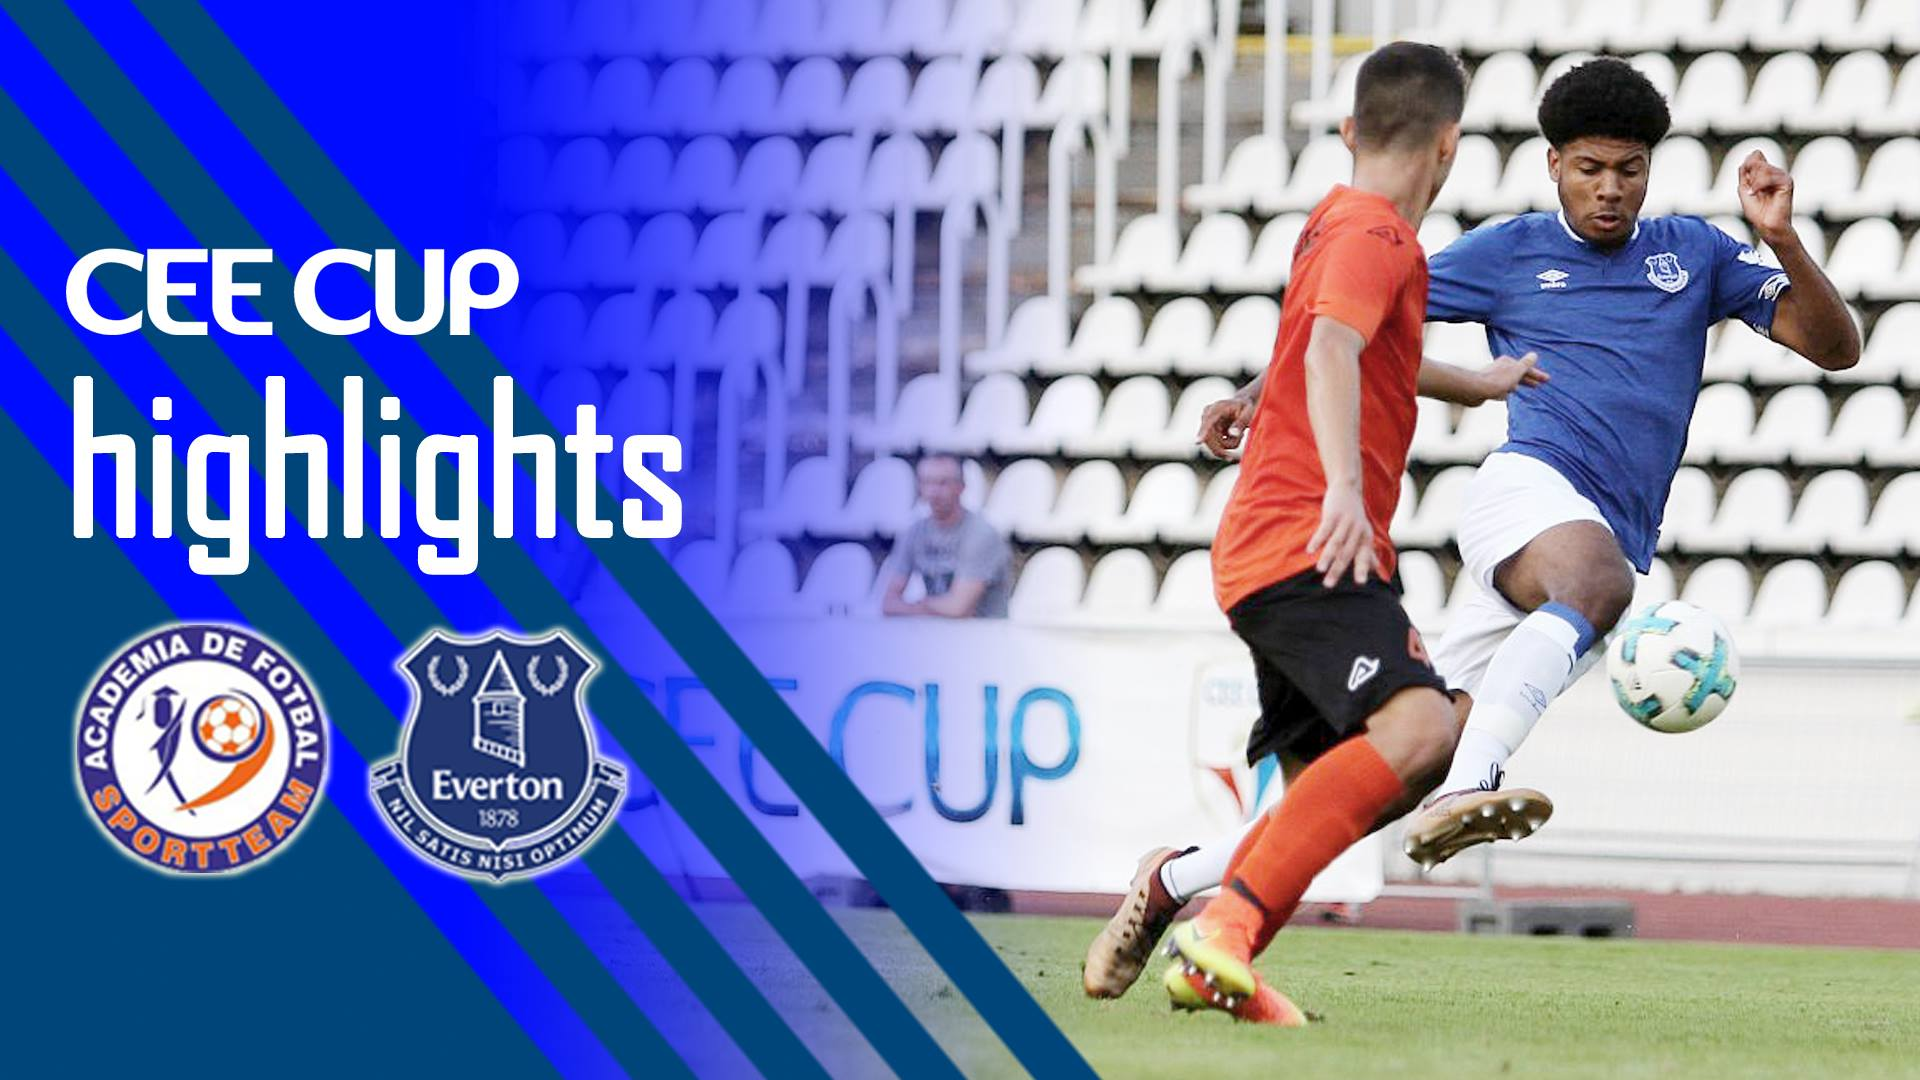 [HIGHLIGHTS] CEE Cup 2018: Academia Sport Team vs Everton FC 0-4